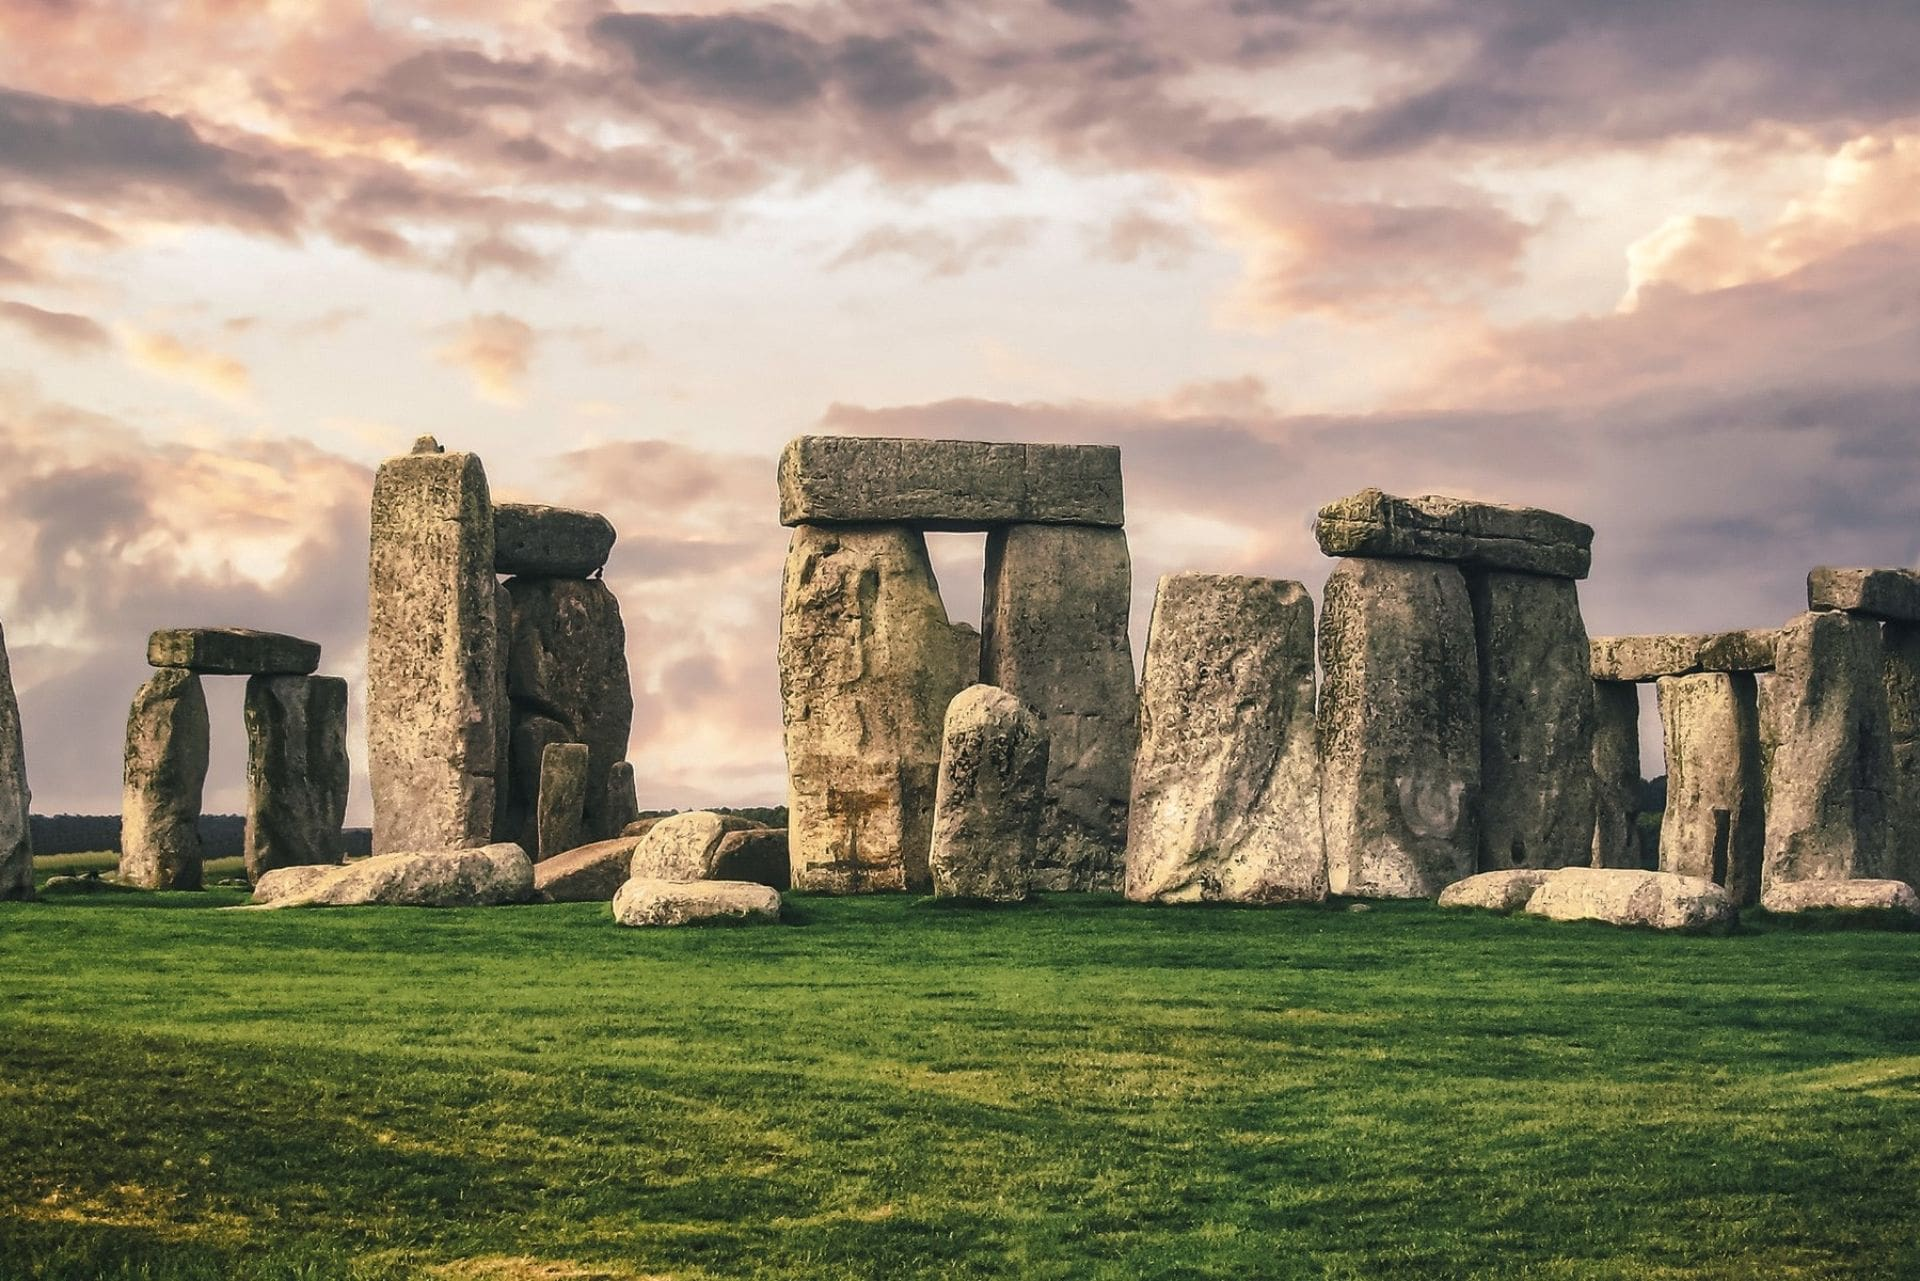 ring-of-large-standing-stones-on-grass-in-field-at-sunset-stonehenge-salisbury-day-trips-from-london-by-car